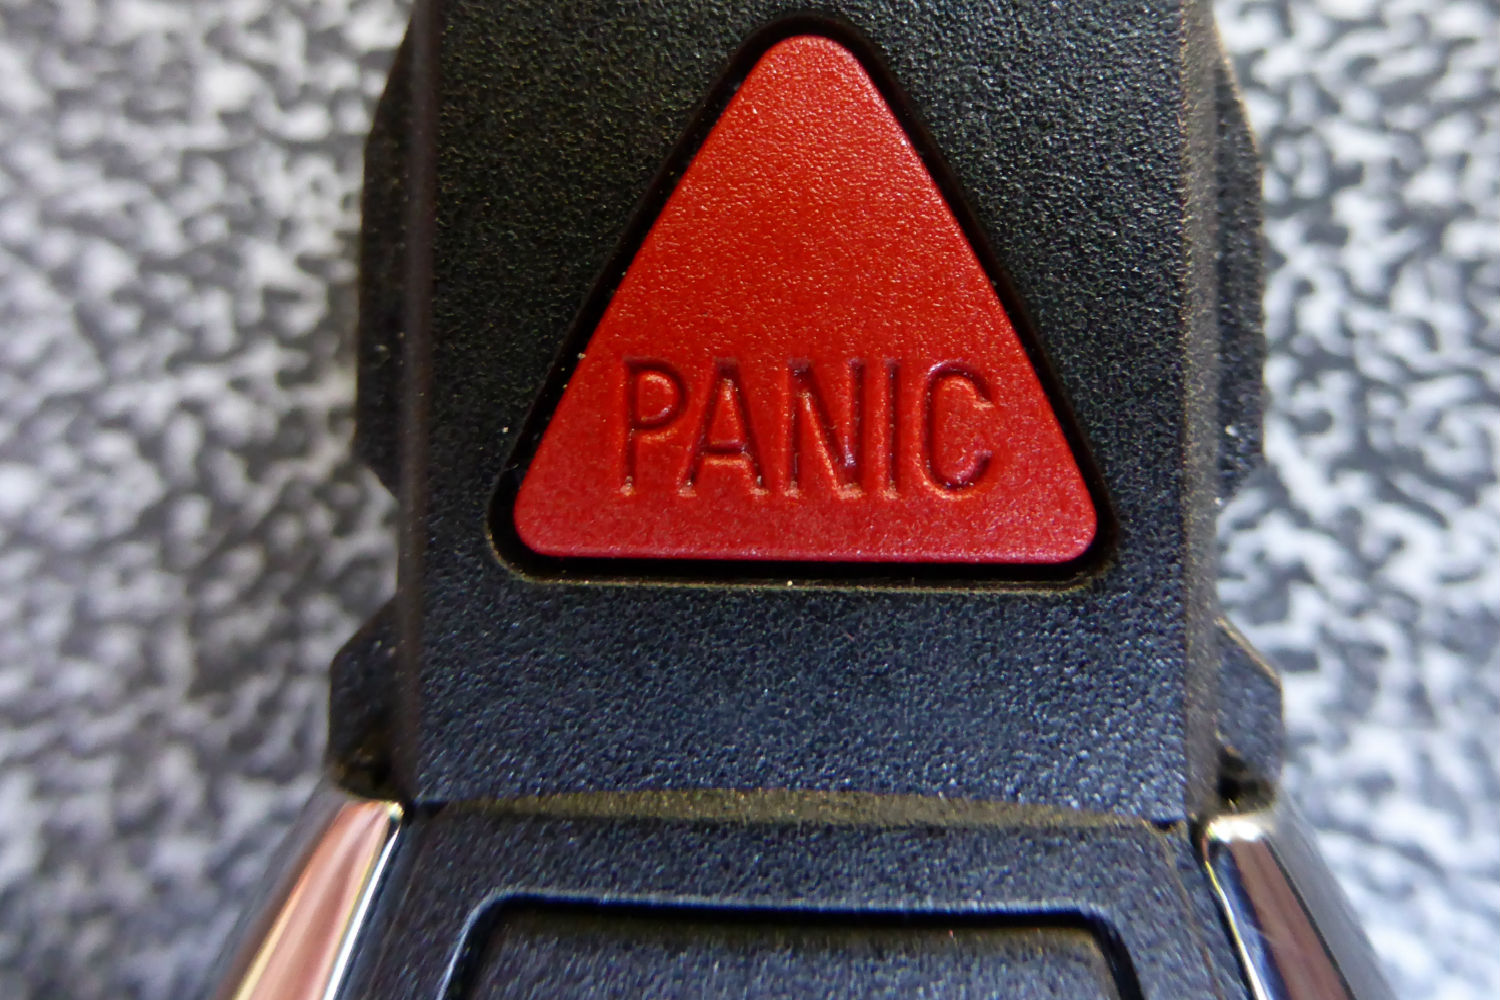 GuardianMPS USPS Panic button Blog Header_large.jpg